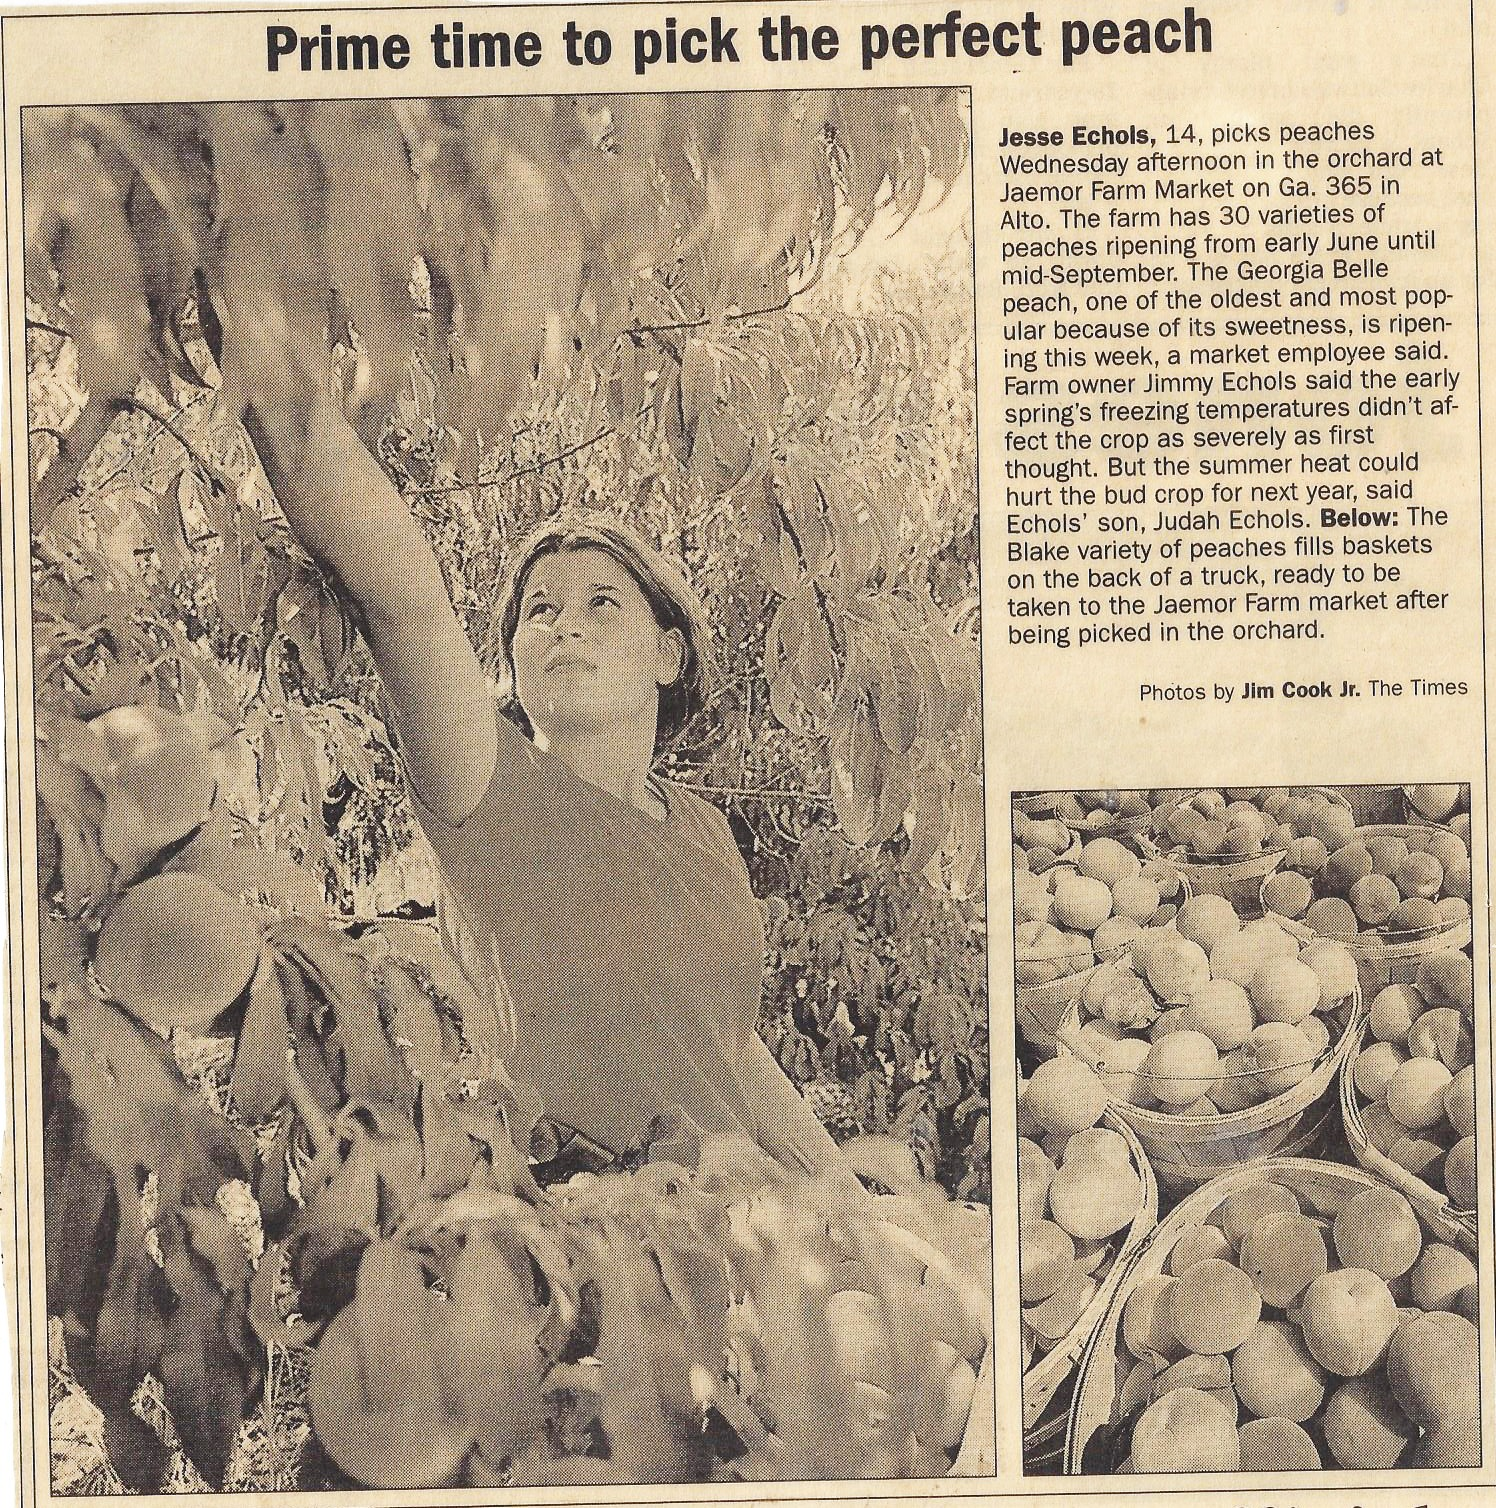 Jesse Echols picking peaches in newspaper clipping